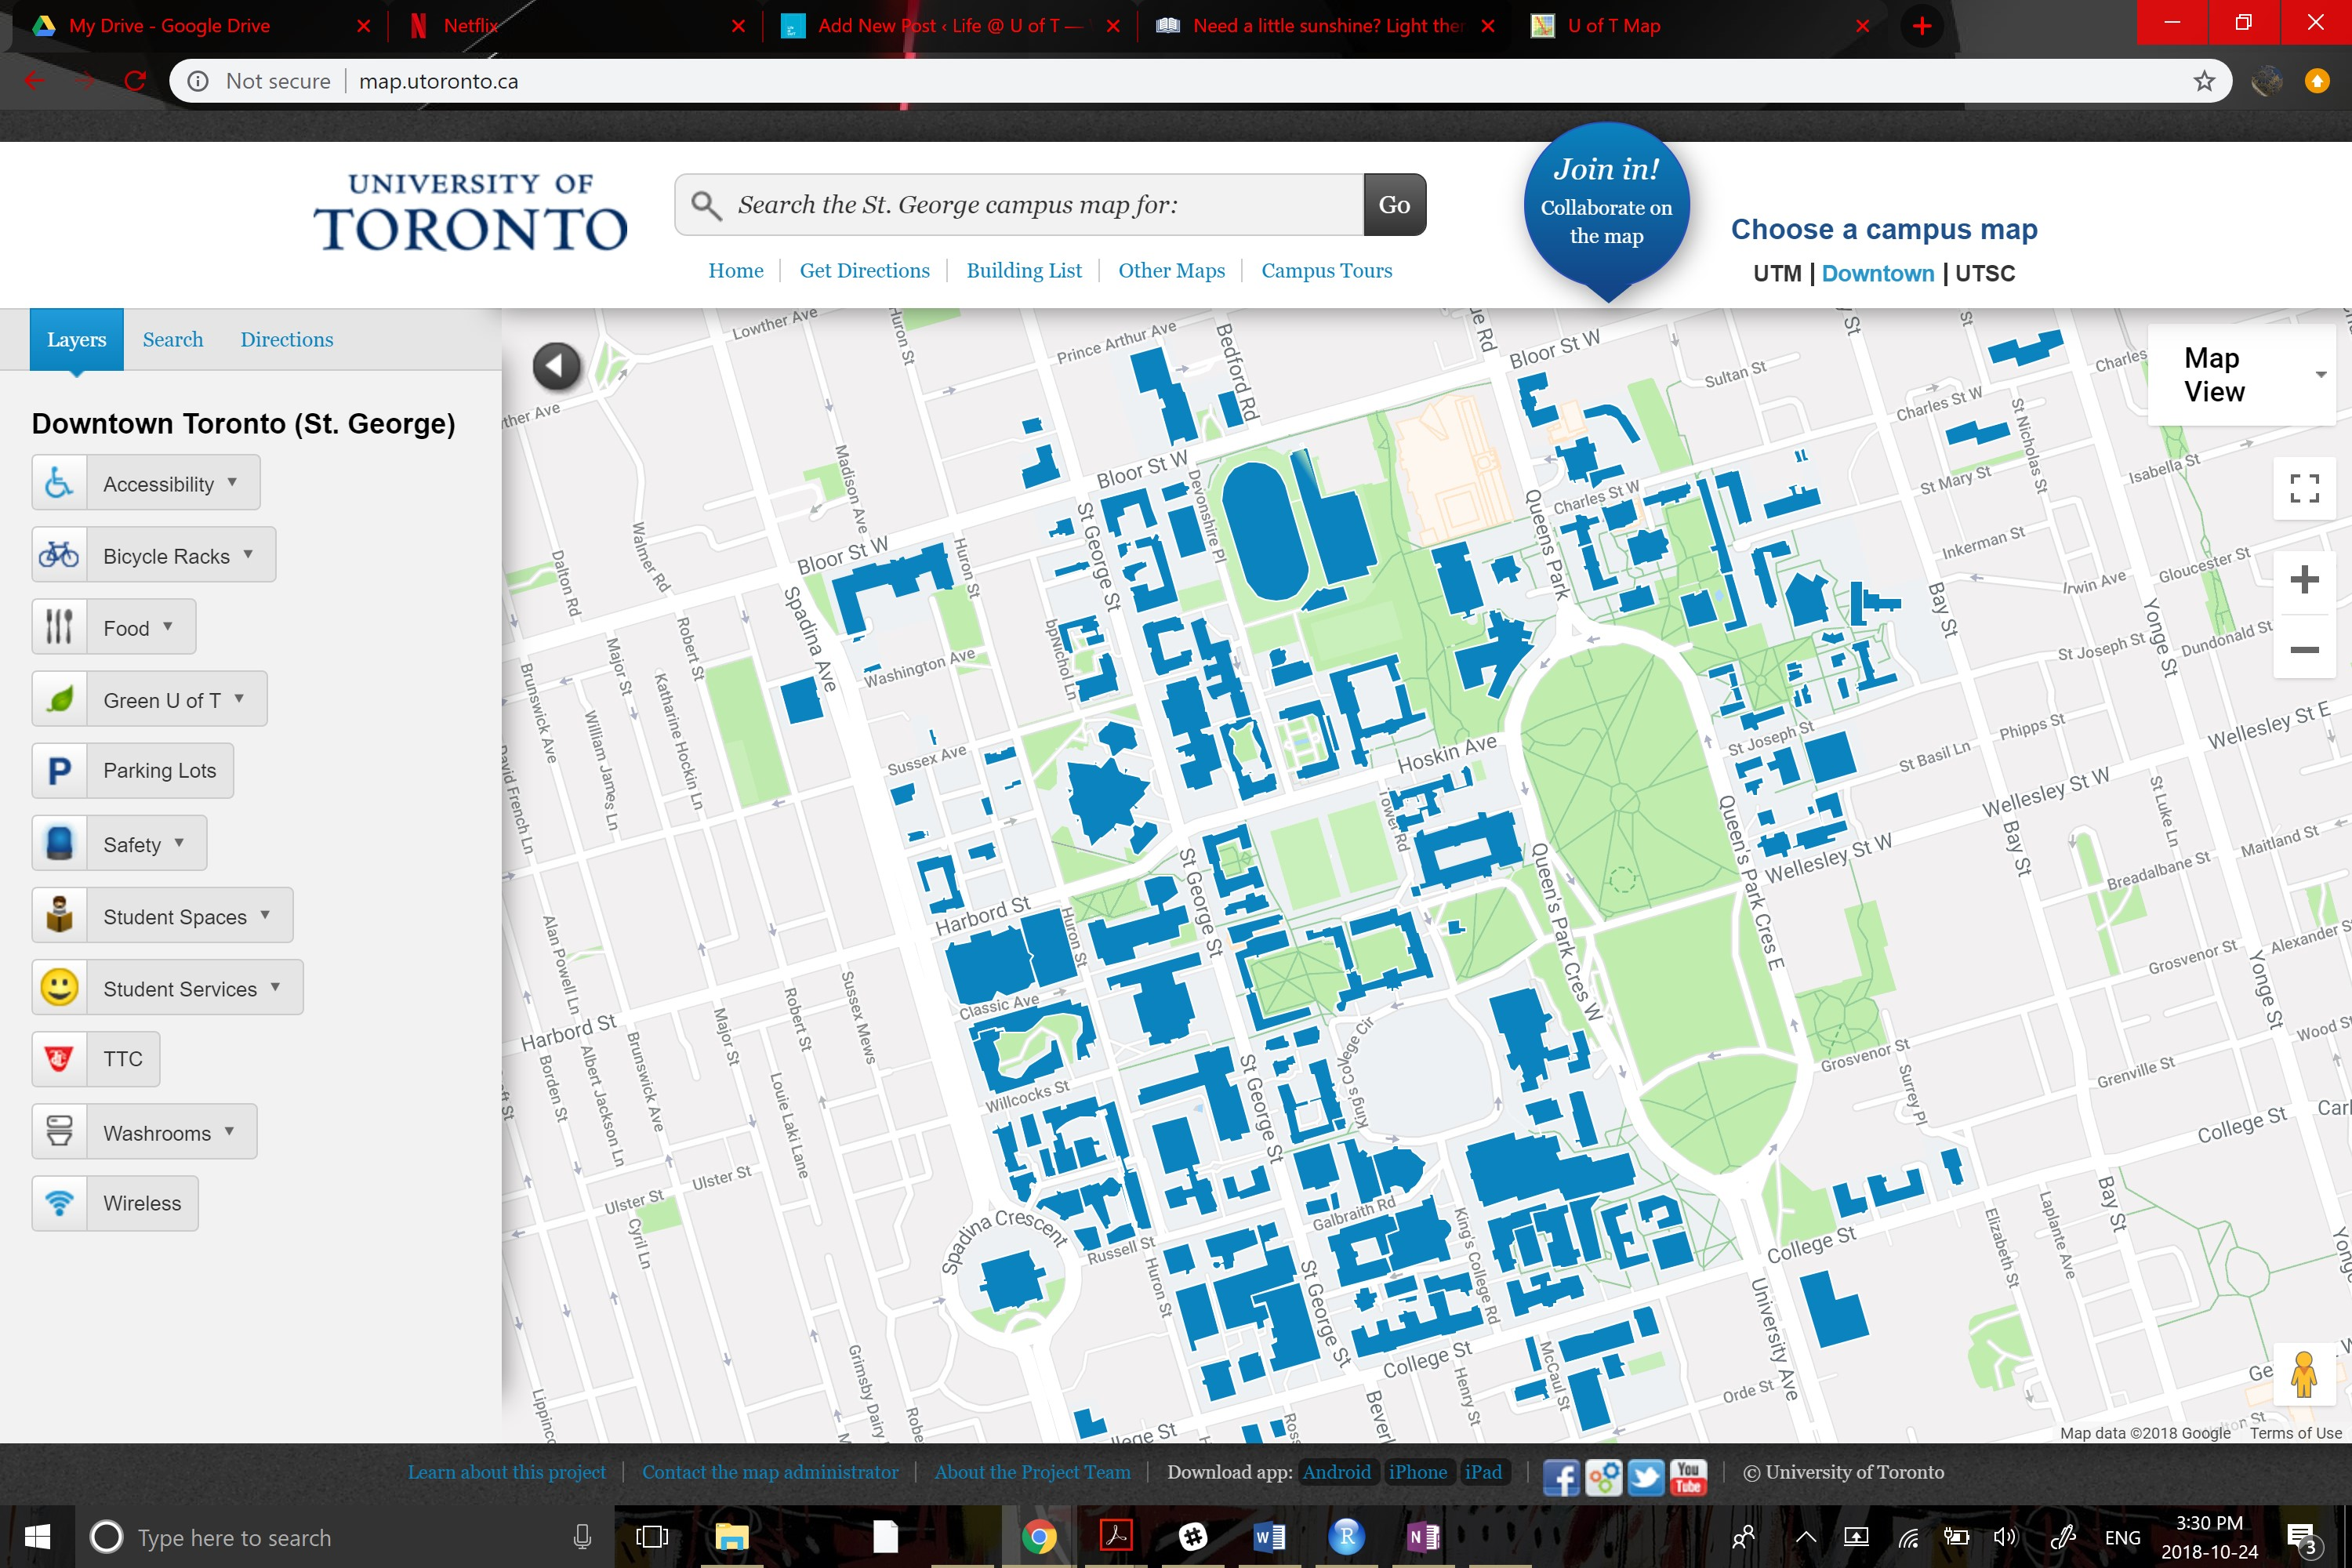 map of UofT